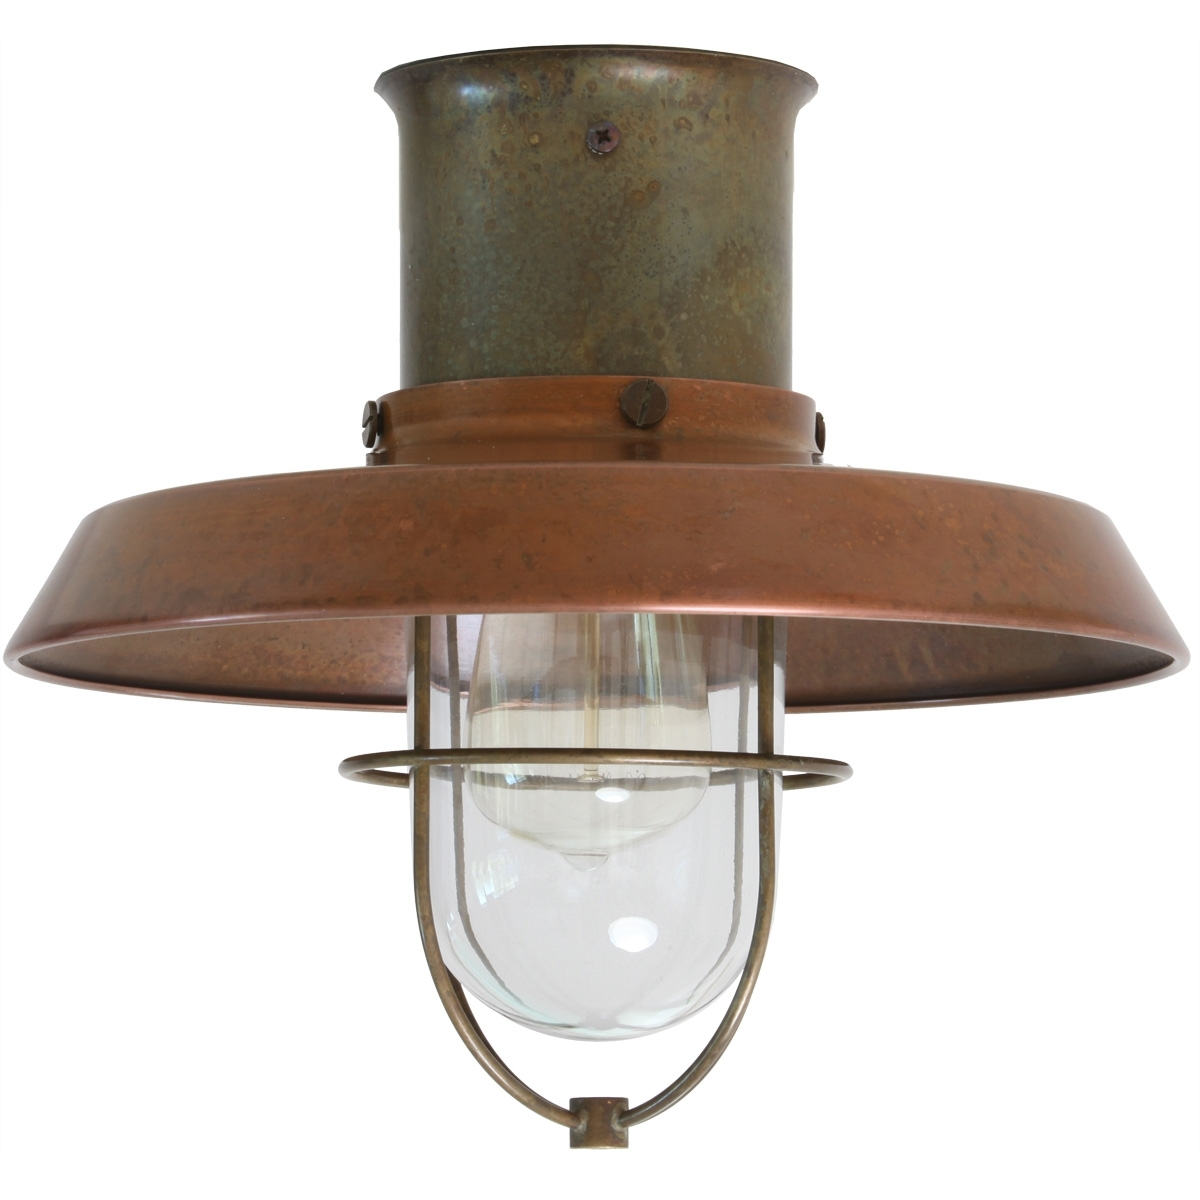 Most Current Outdoor Ceiling Lights For Patio With Regard To Maritime Outdoor Ceiling Light Il Patio 225. (View 8 of 20)